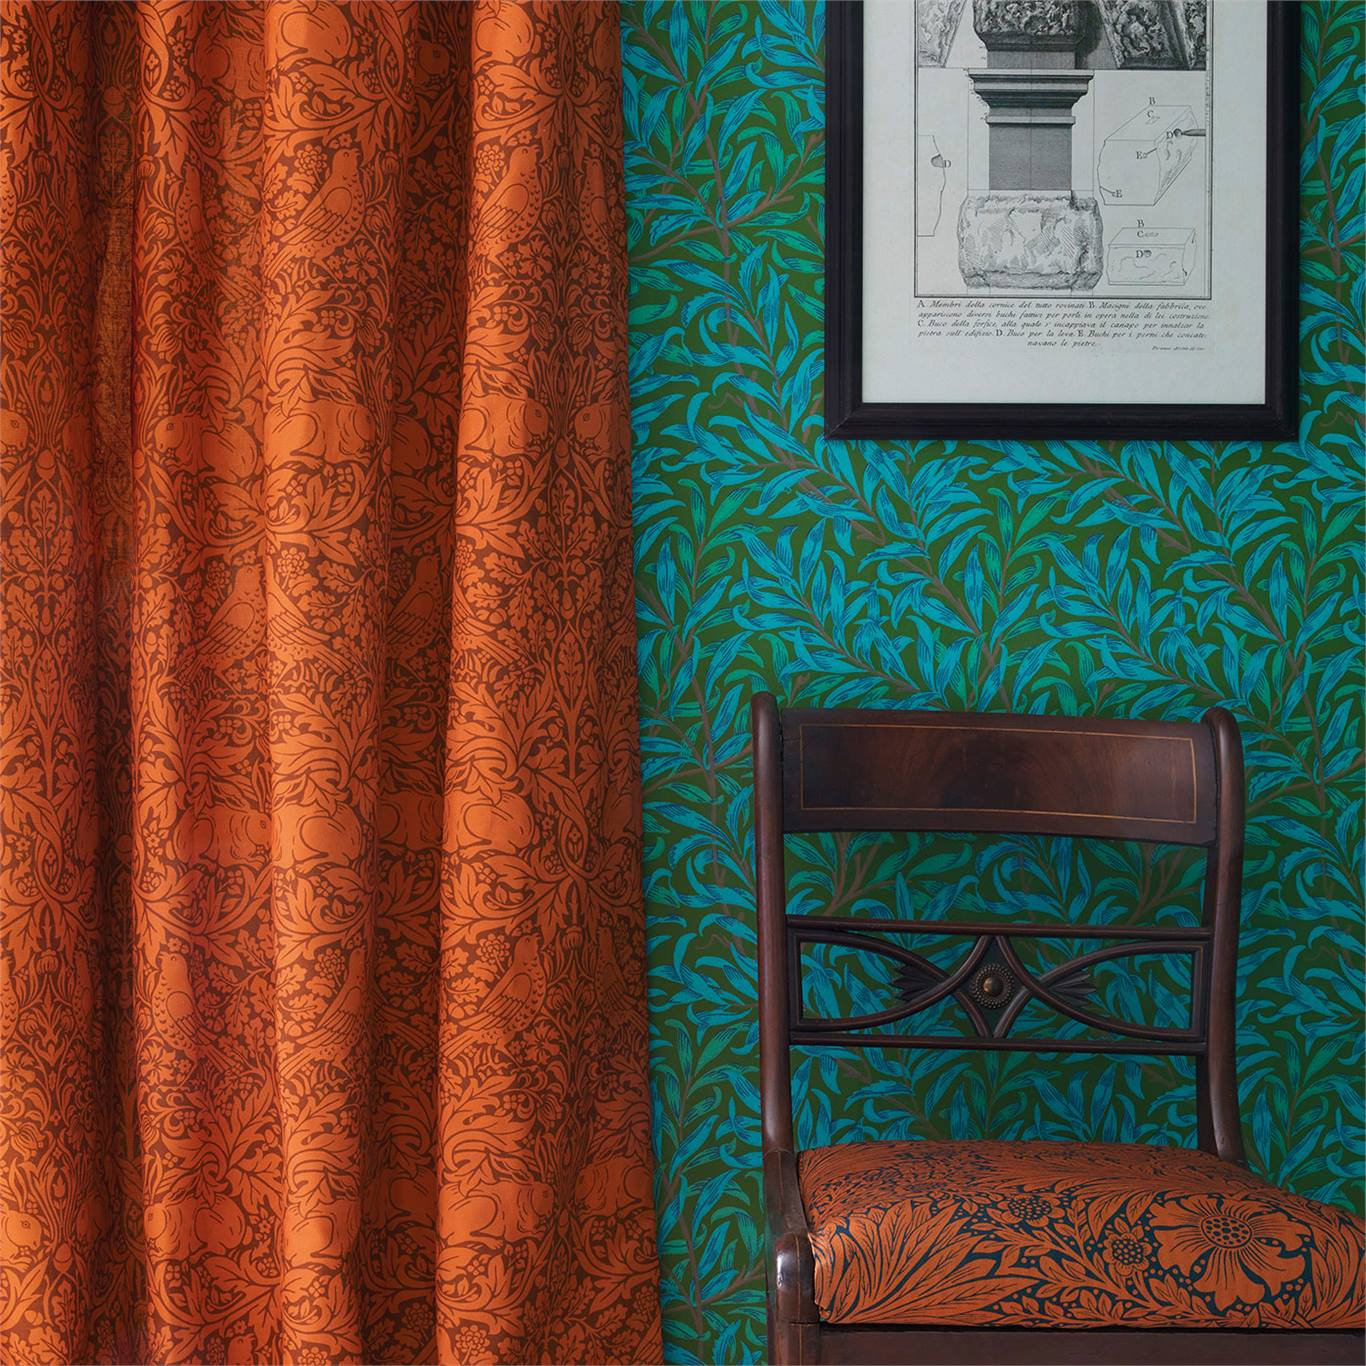 Rust coloured curtains and upholstered chair against marine blue wallpaper